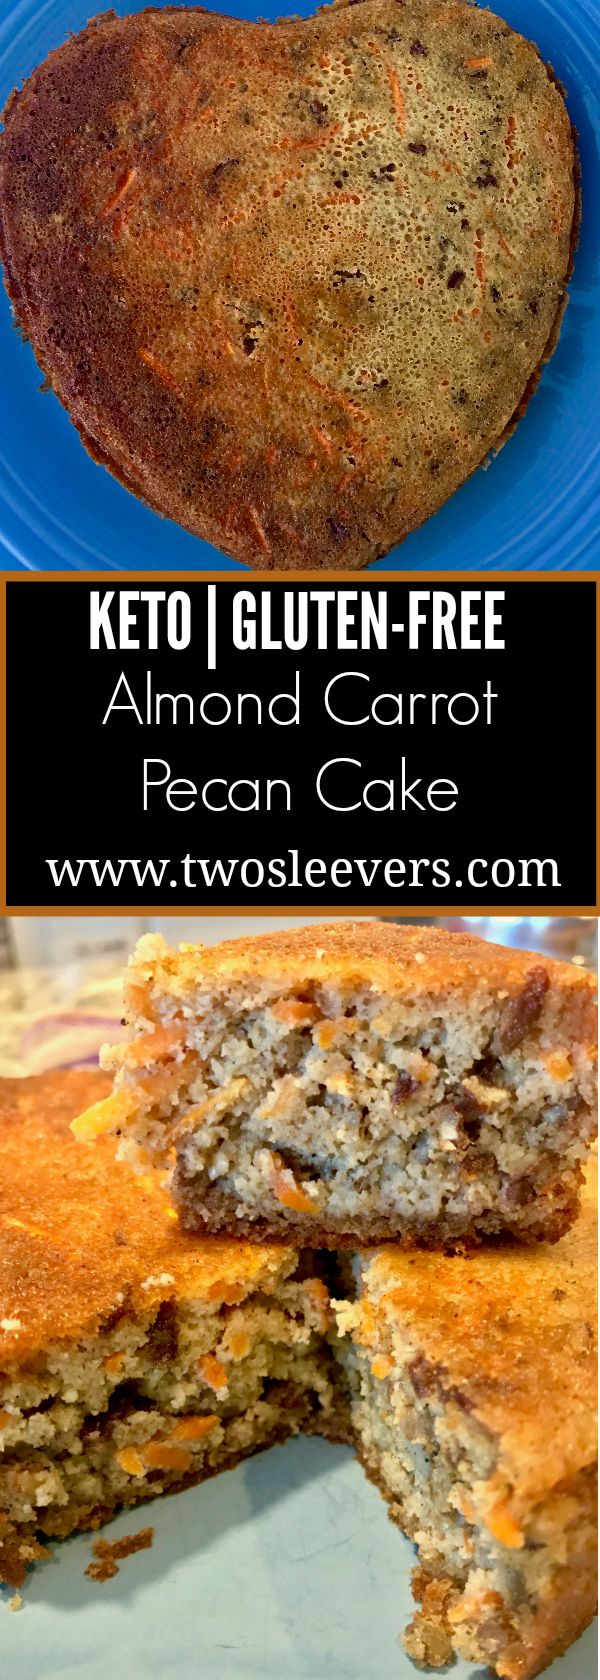 Easy, gluten-free, keto, almond carrot cake. Dump and mix, and bake and this will be the best cake you've ever had.